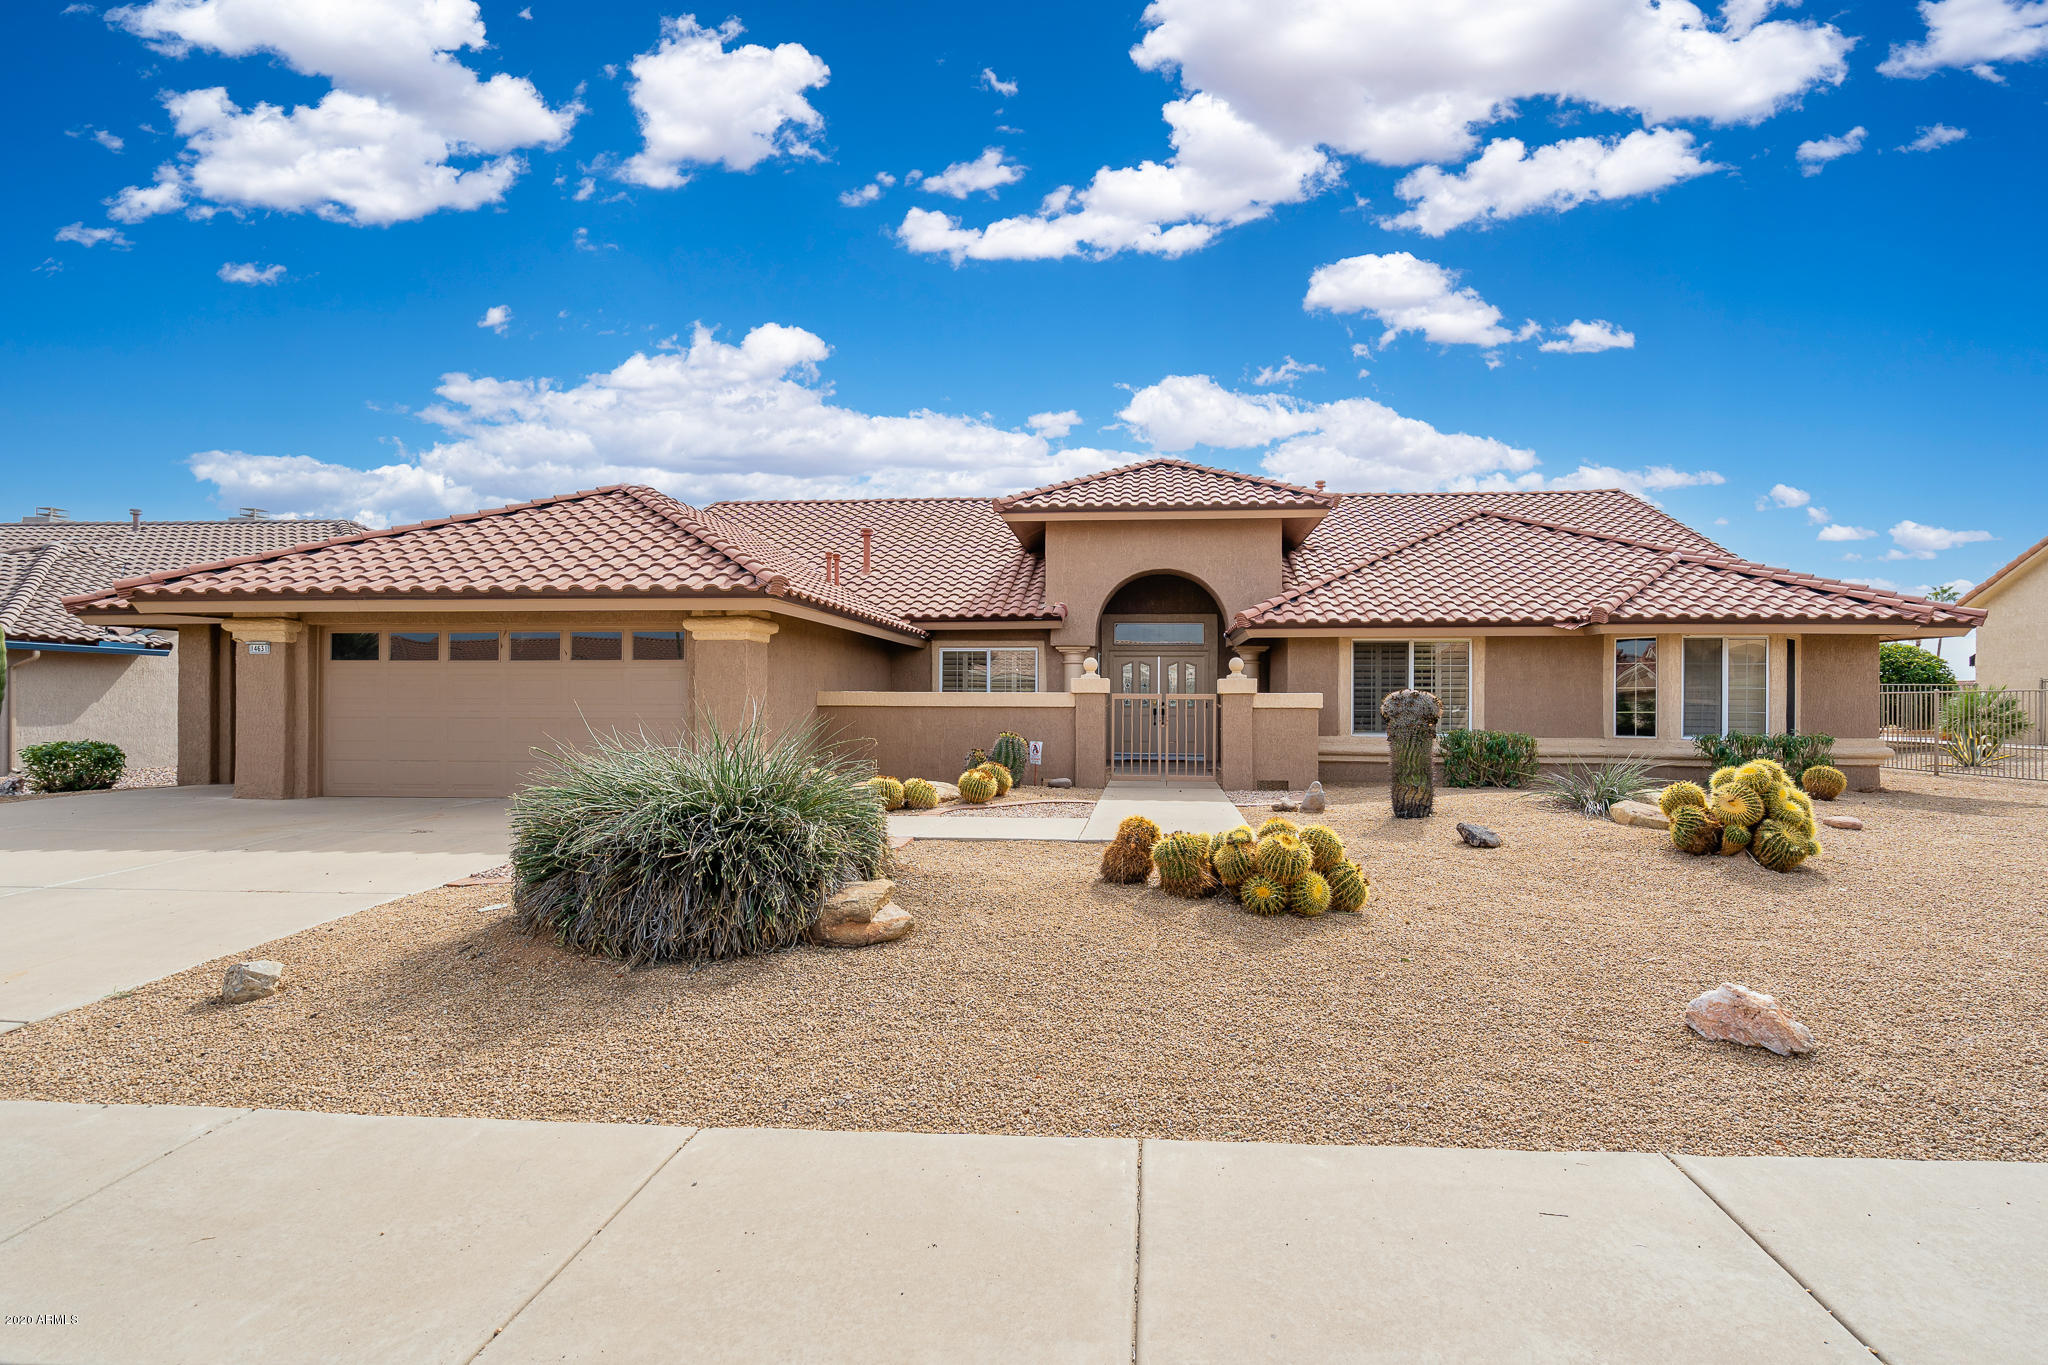 14631 W FUTURA Drive, Sun City West, AZ 85375, 2 Bedrooms Bedrooms, ,Residential Lease,For Rent,14631 W FUTURA Drive,6158446